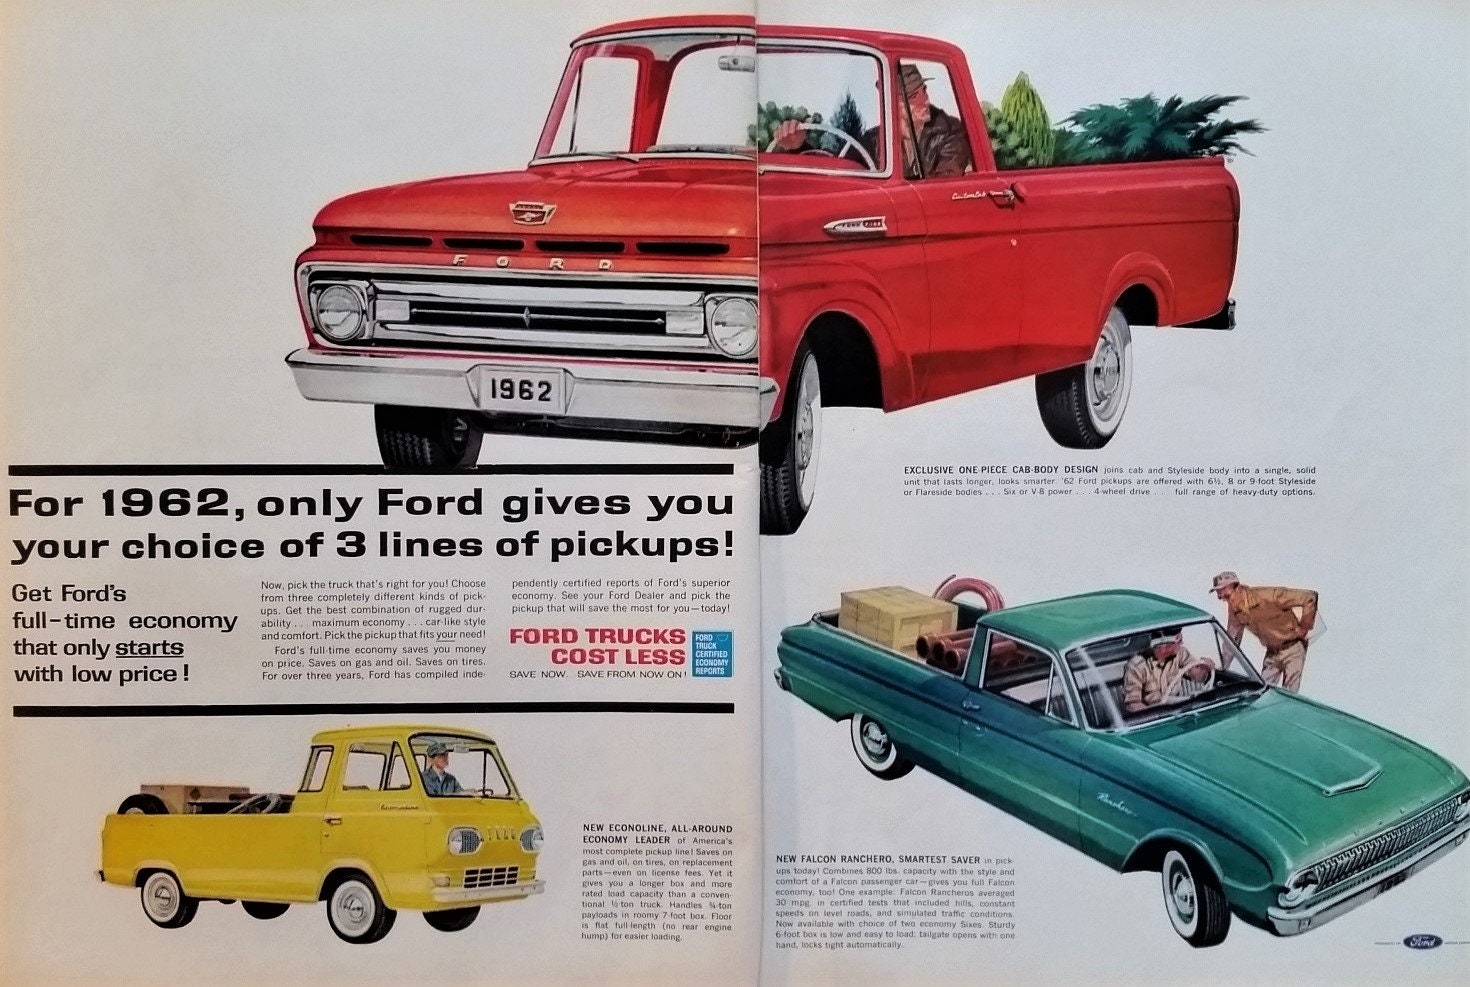 62 Ford Truck Pickup Econolne Falcon Ranchero Illustrations Classic Models  Teardrop Headlights 1962 2 pages Yellow Red 13x10 Ready Frame